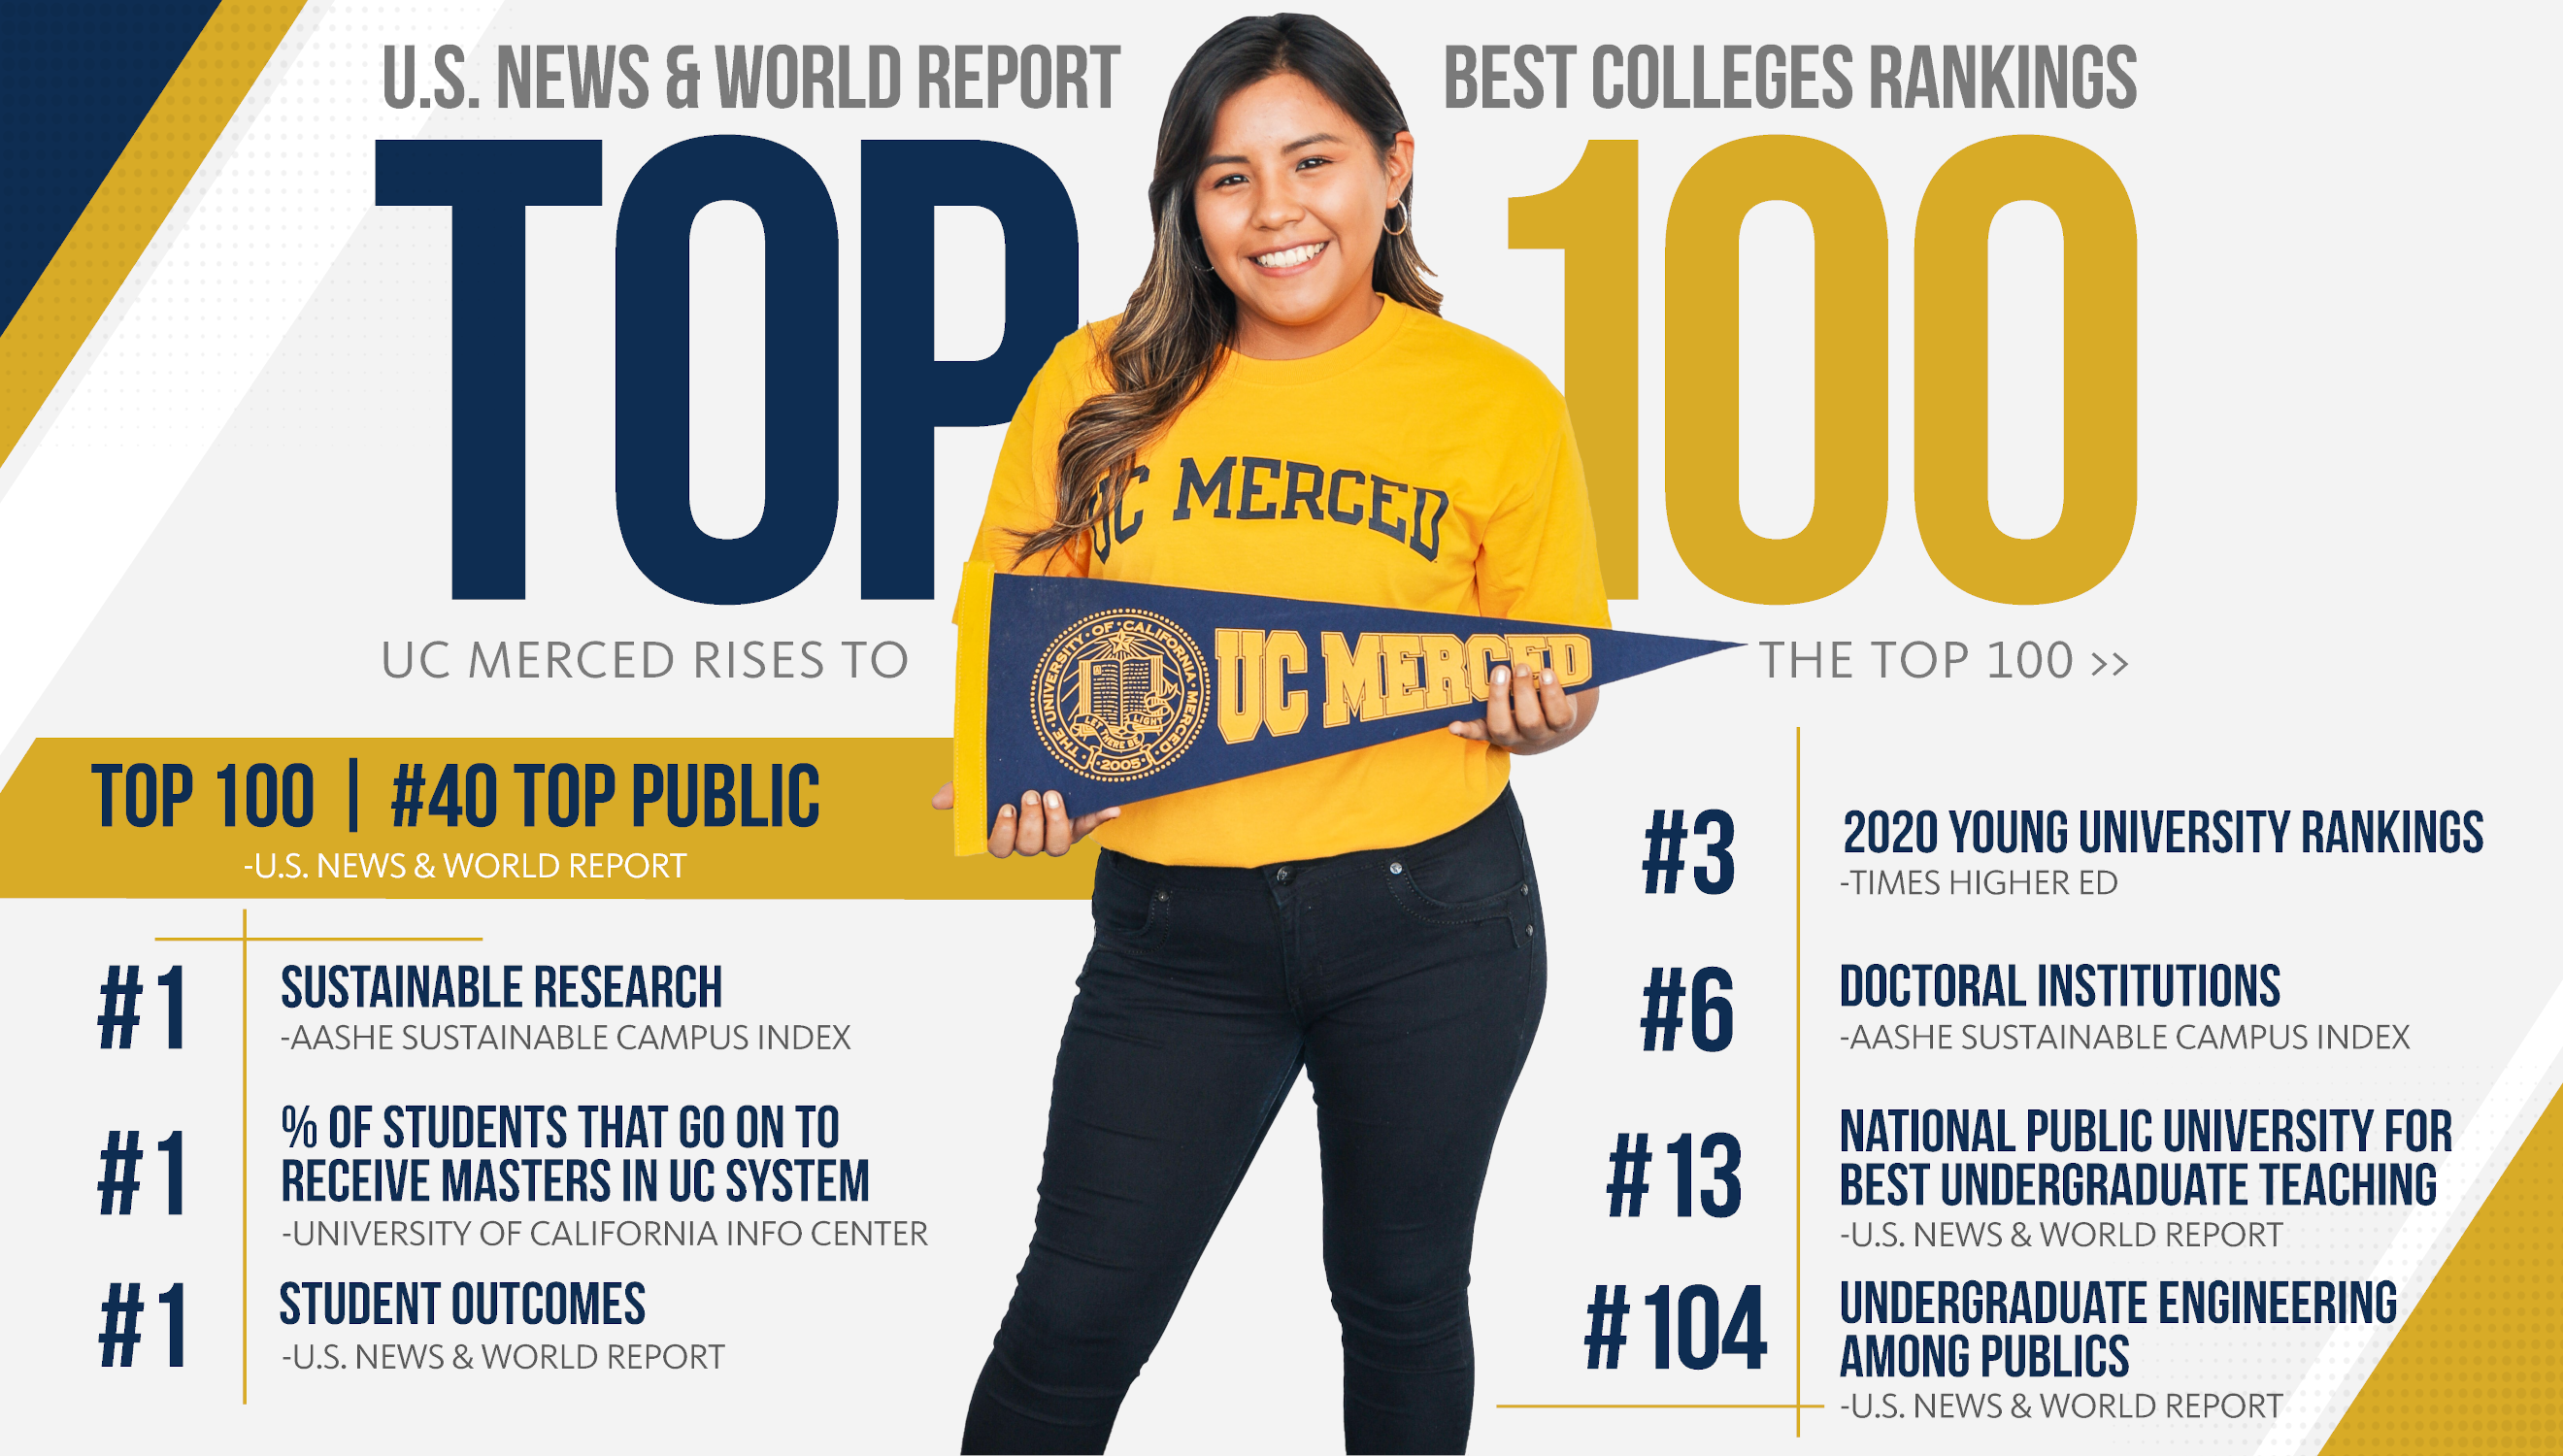 Top 100 college in the nation